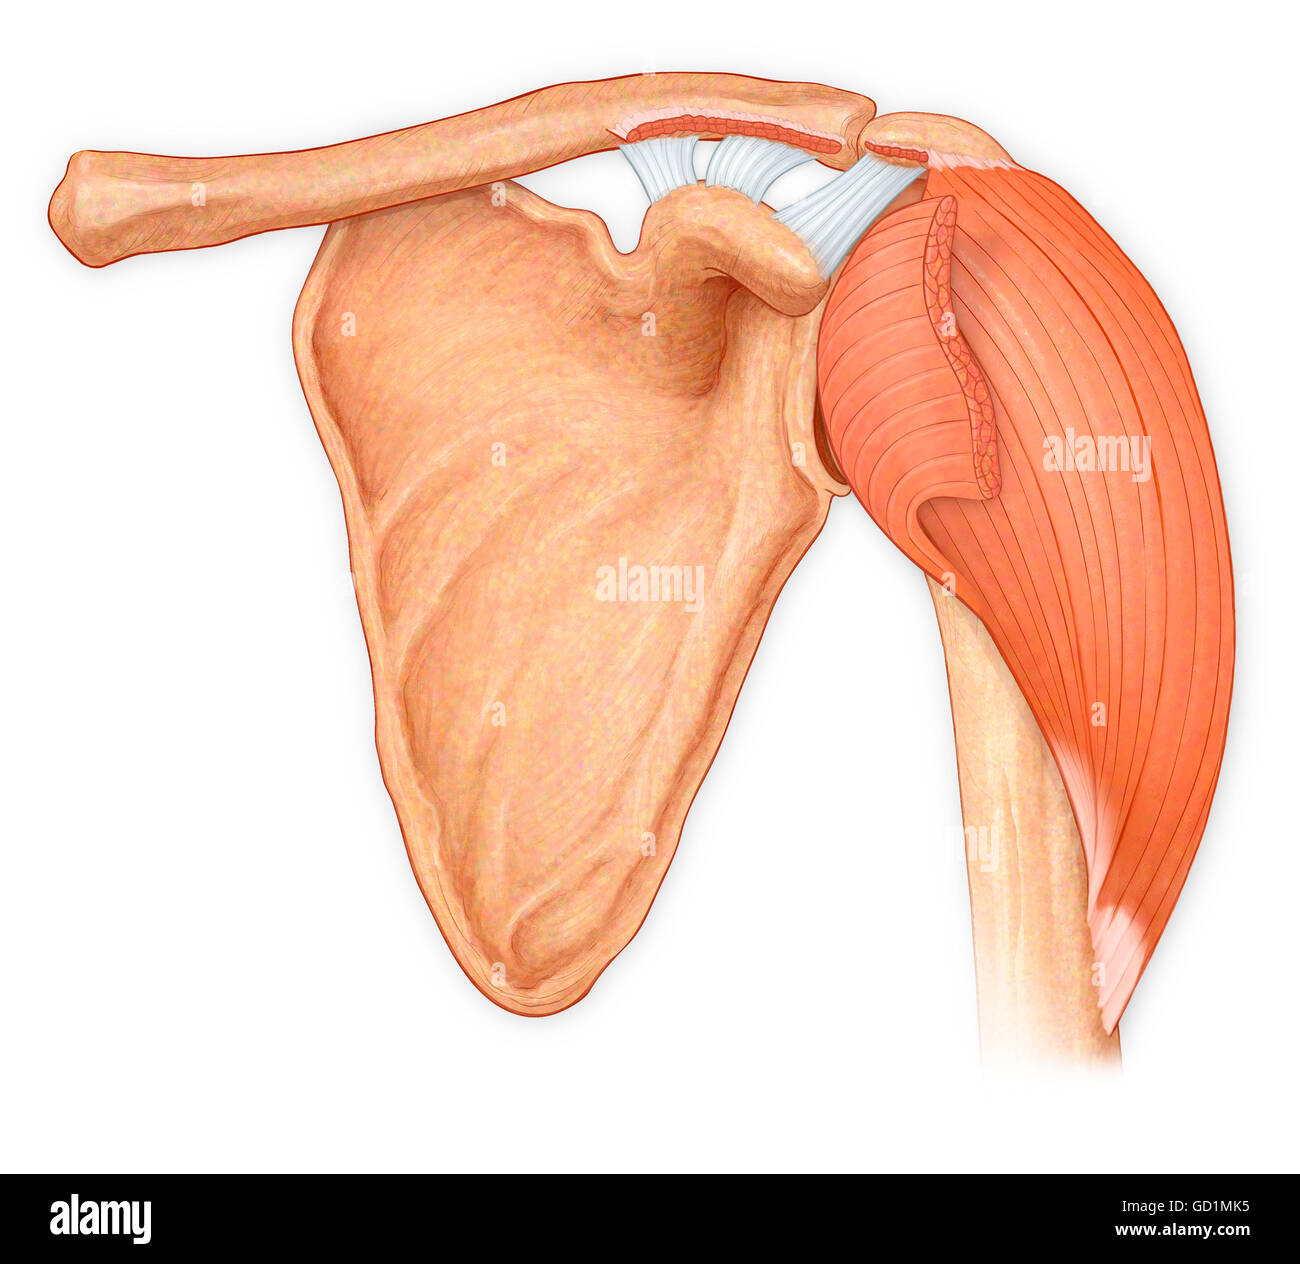 Normal anterior view of the shoulder joint, hilighting reflected deltoid, showing the coracoacromial, trapezoid Stock Photo